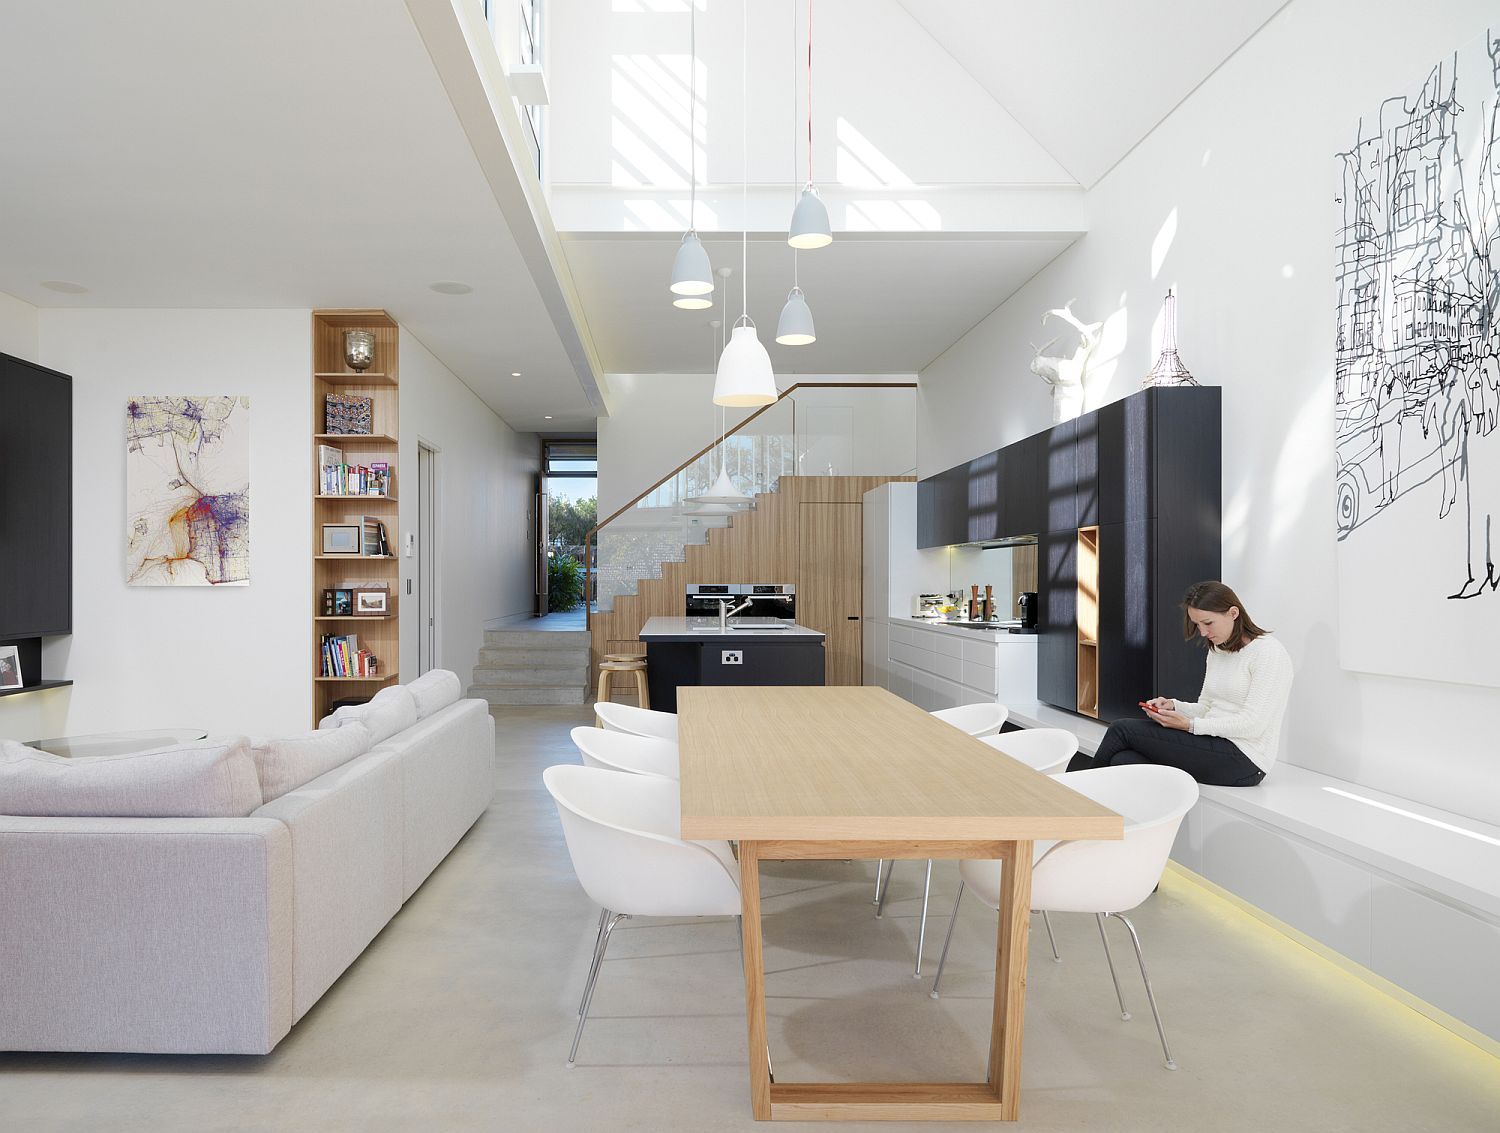 Fabulous and light-filled living area with kitchen and dining space